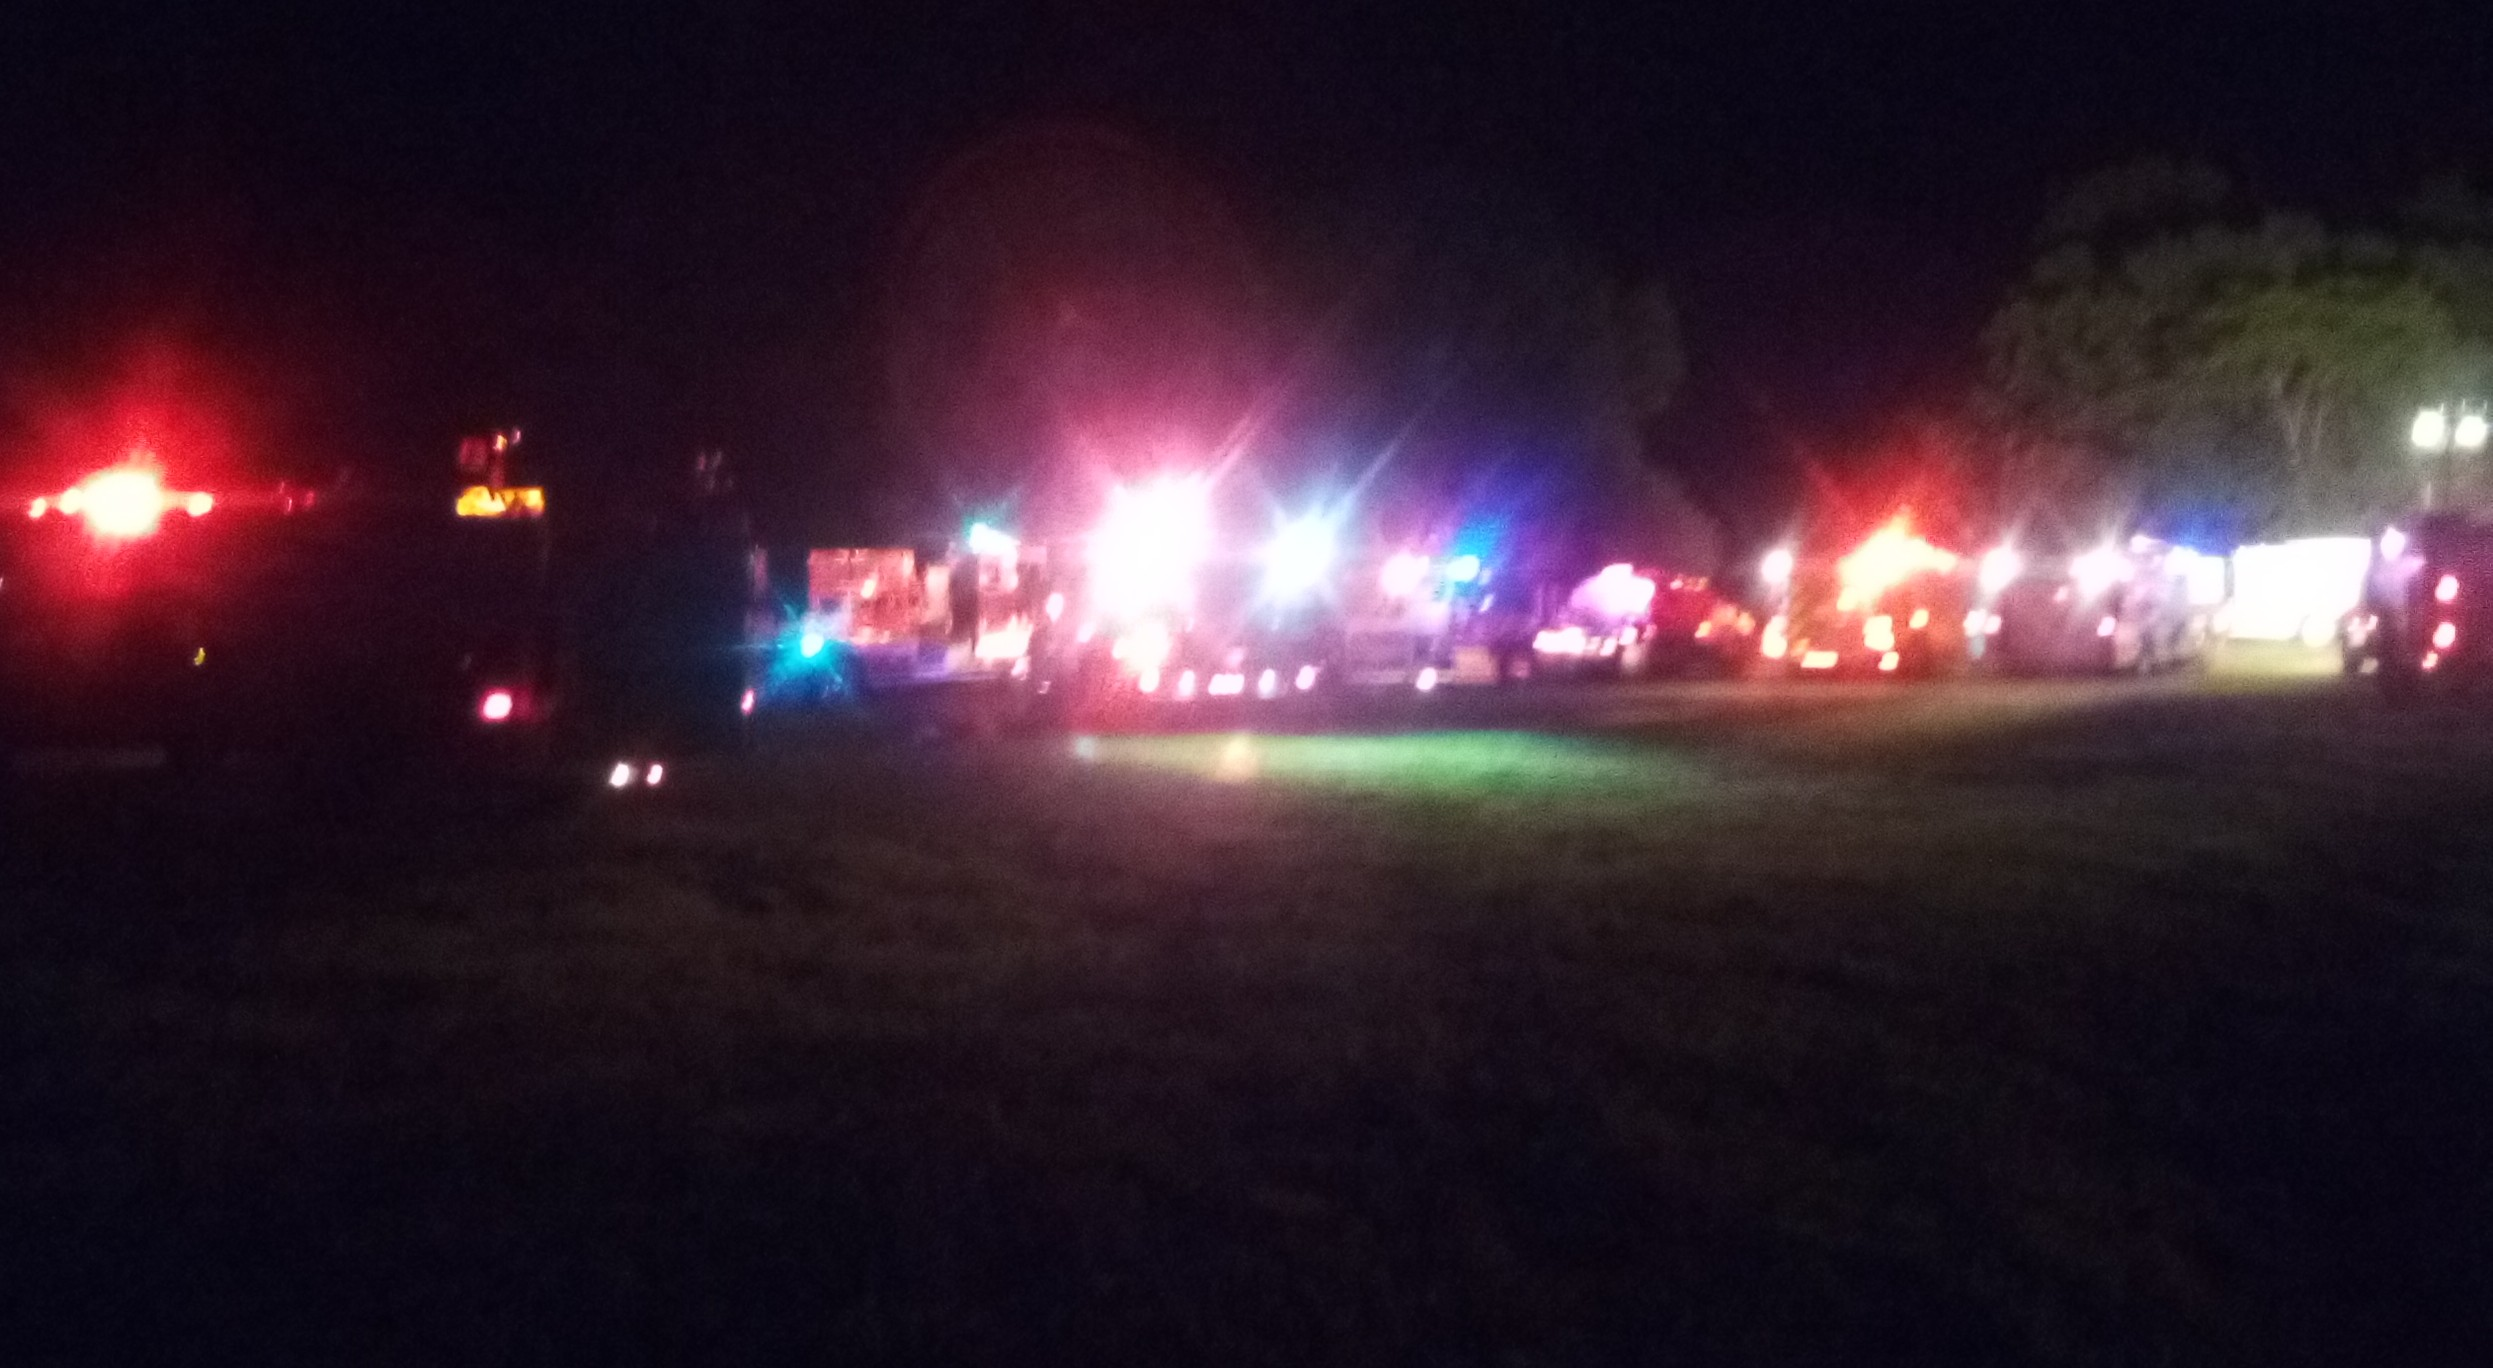 UPDATED: Fire Departments Respond to Fire at Chaumette Vineyard and Winery